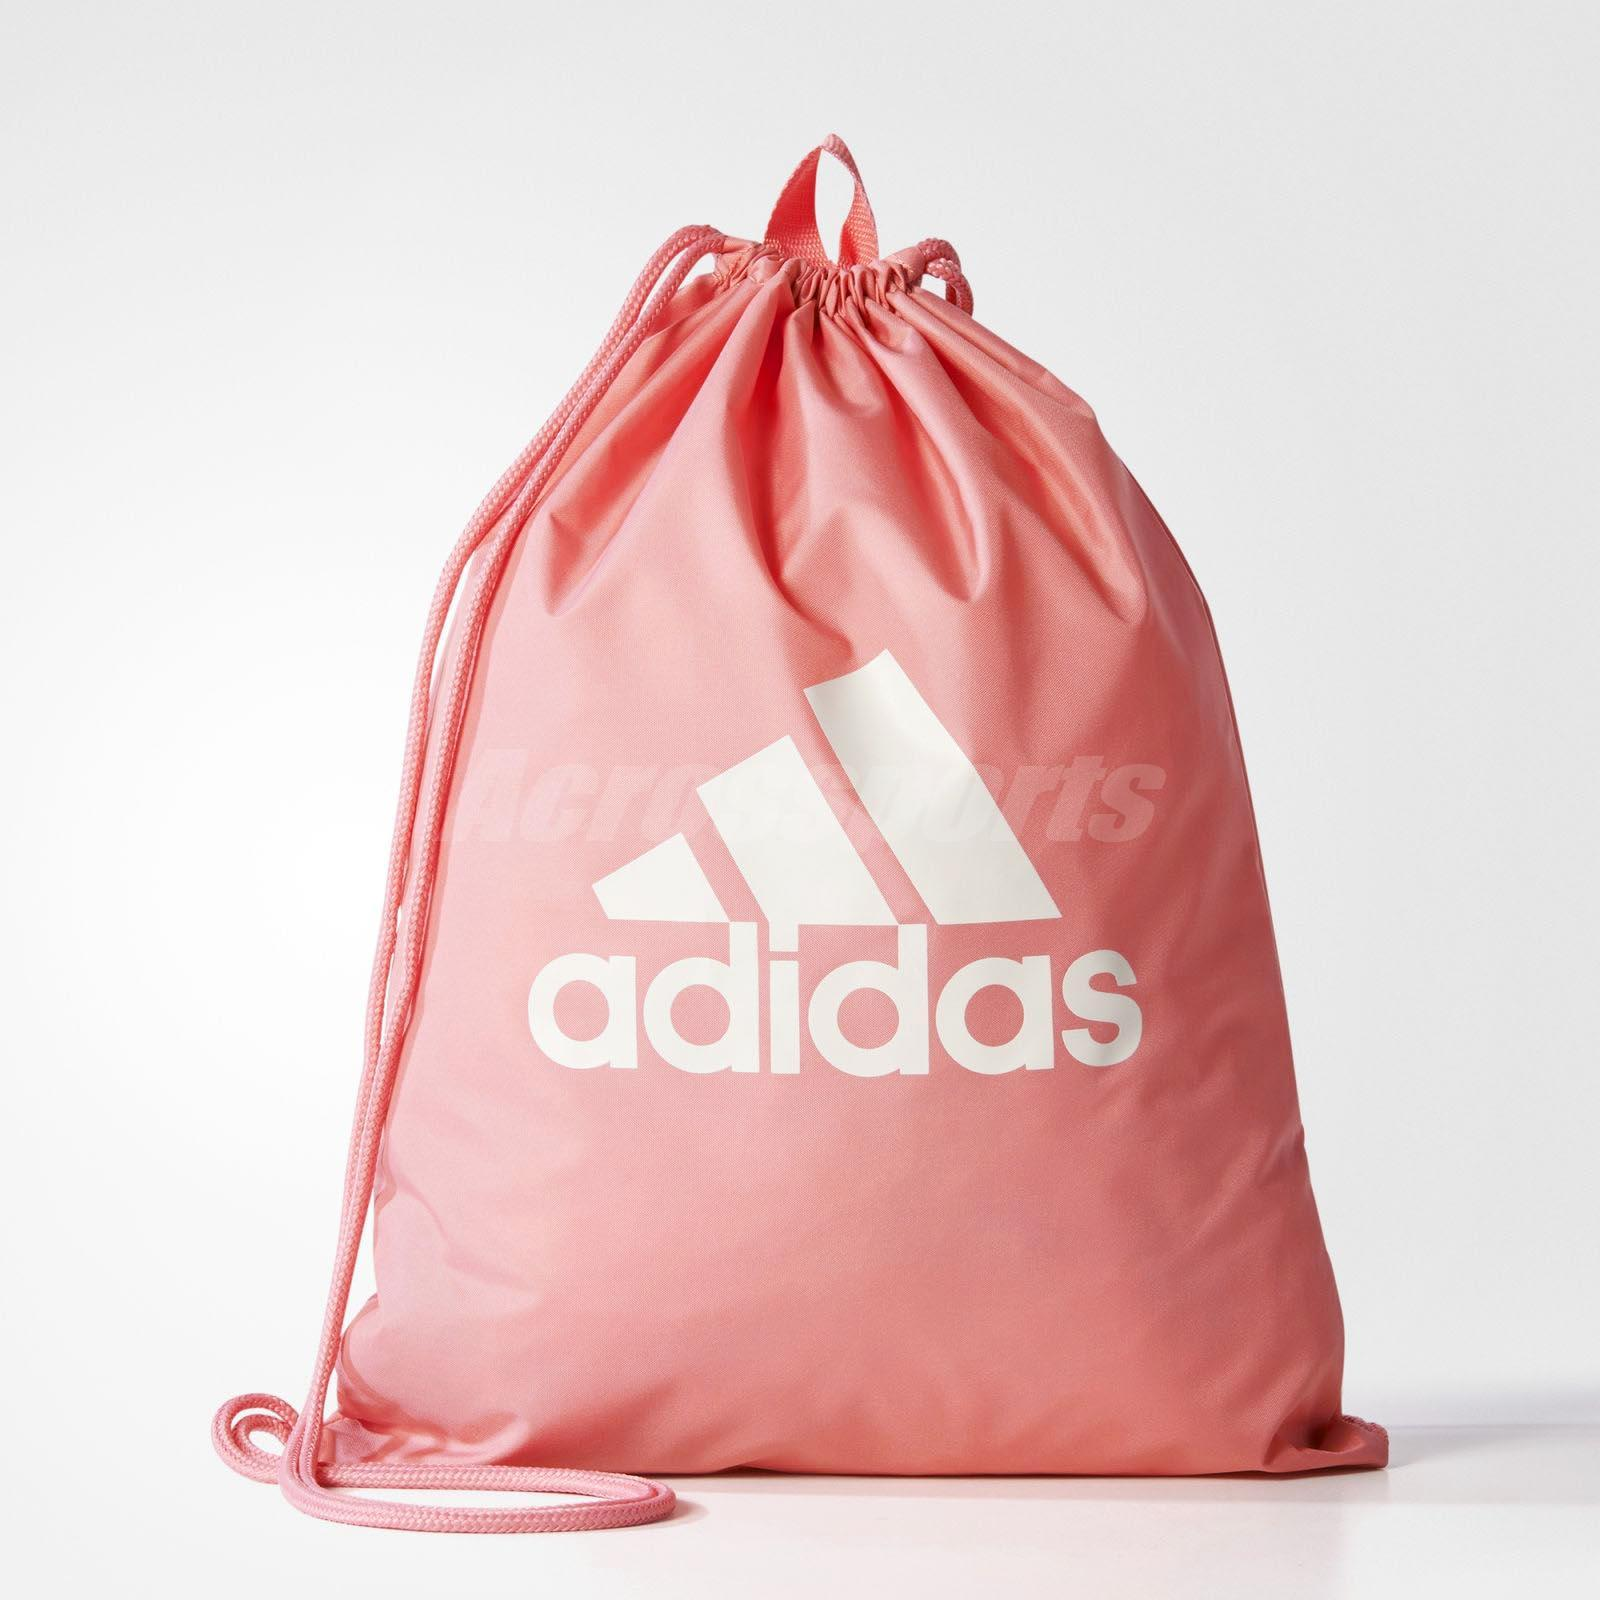 08f4ad81dceaa adidas Unisex Performance Logo Gymsack Bag Backpack Running Training Pink  BR5200